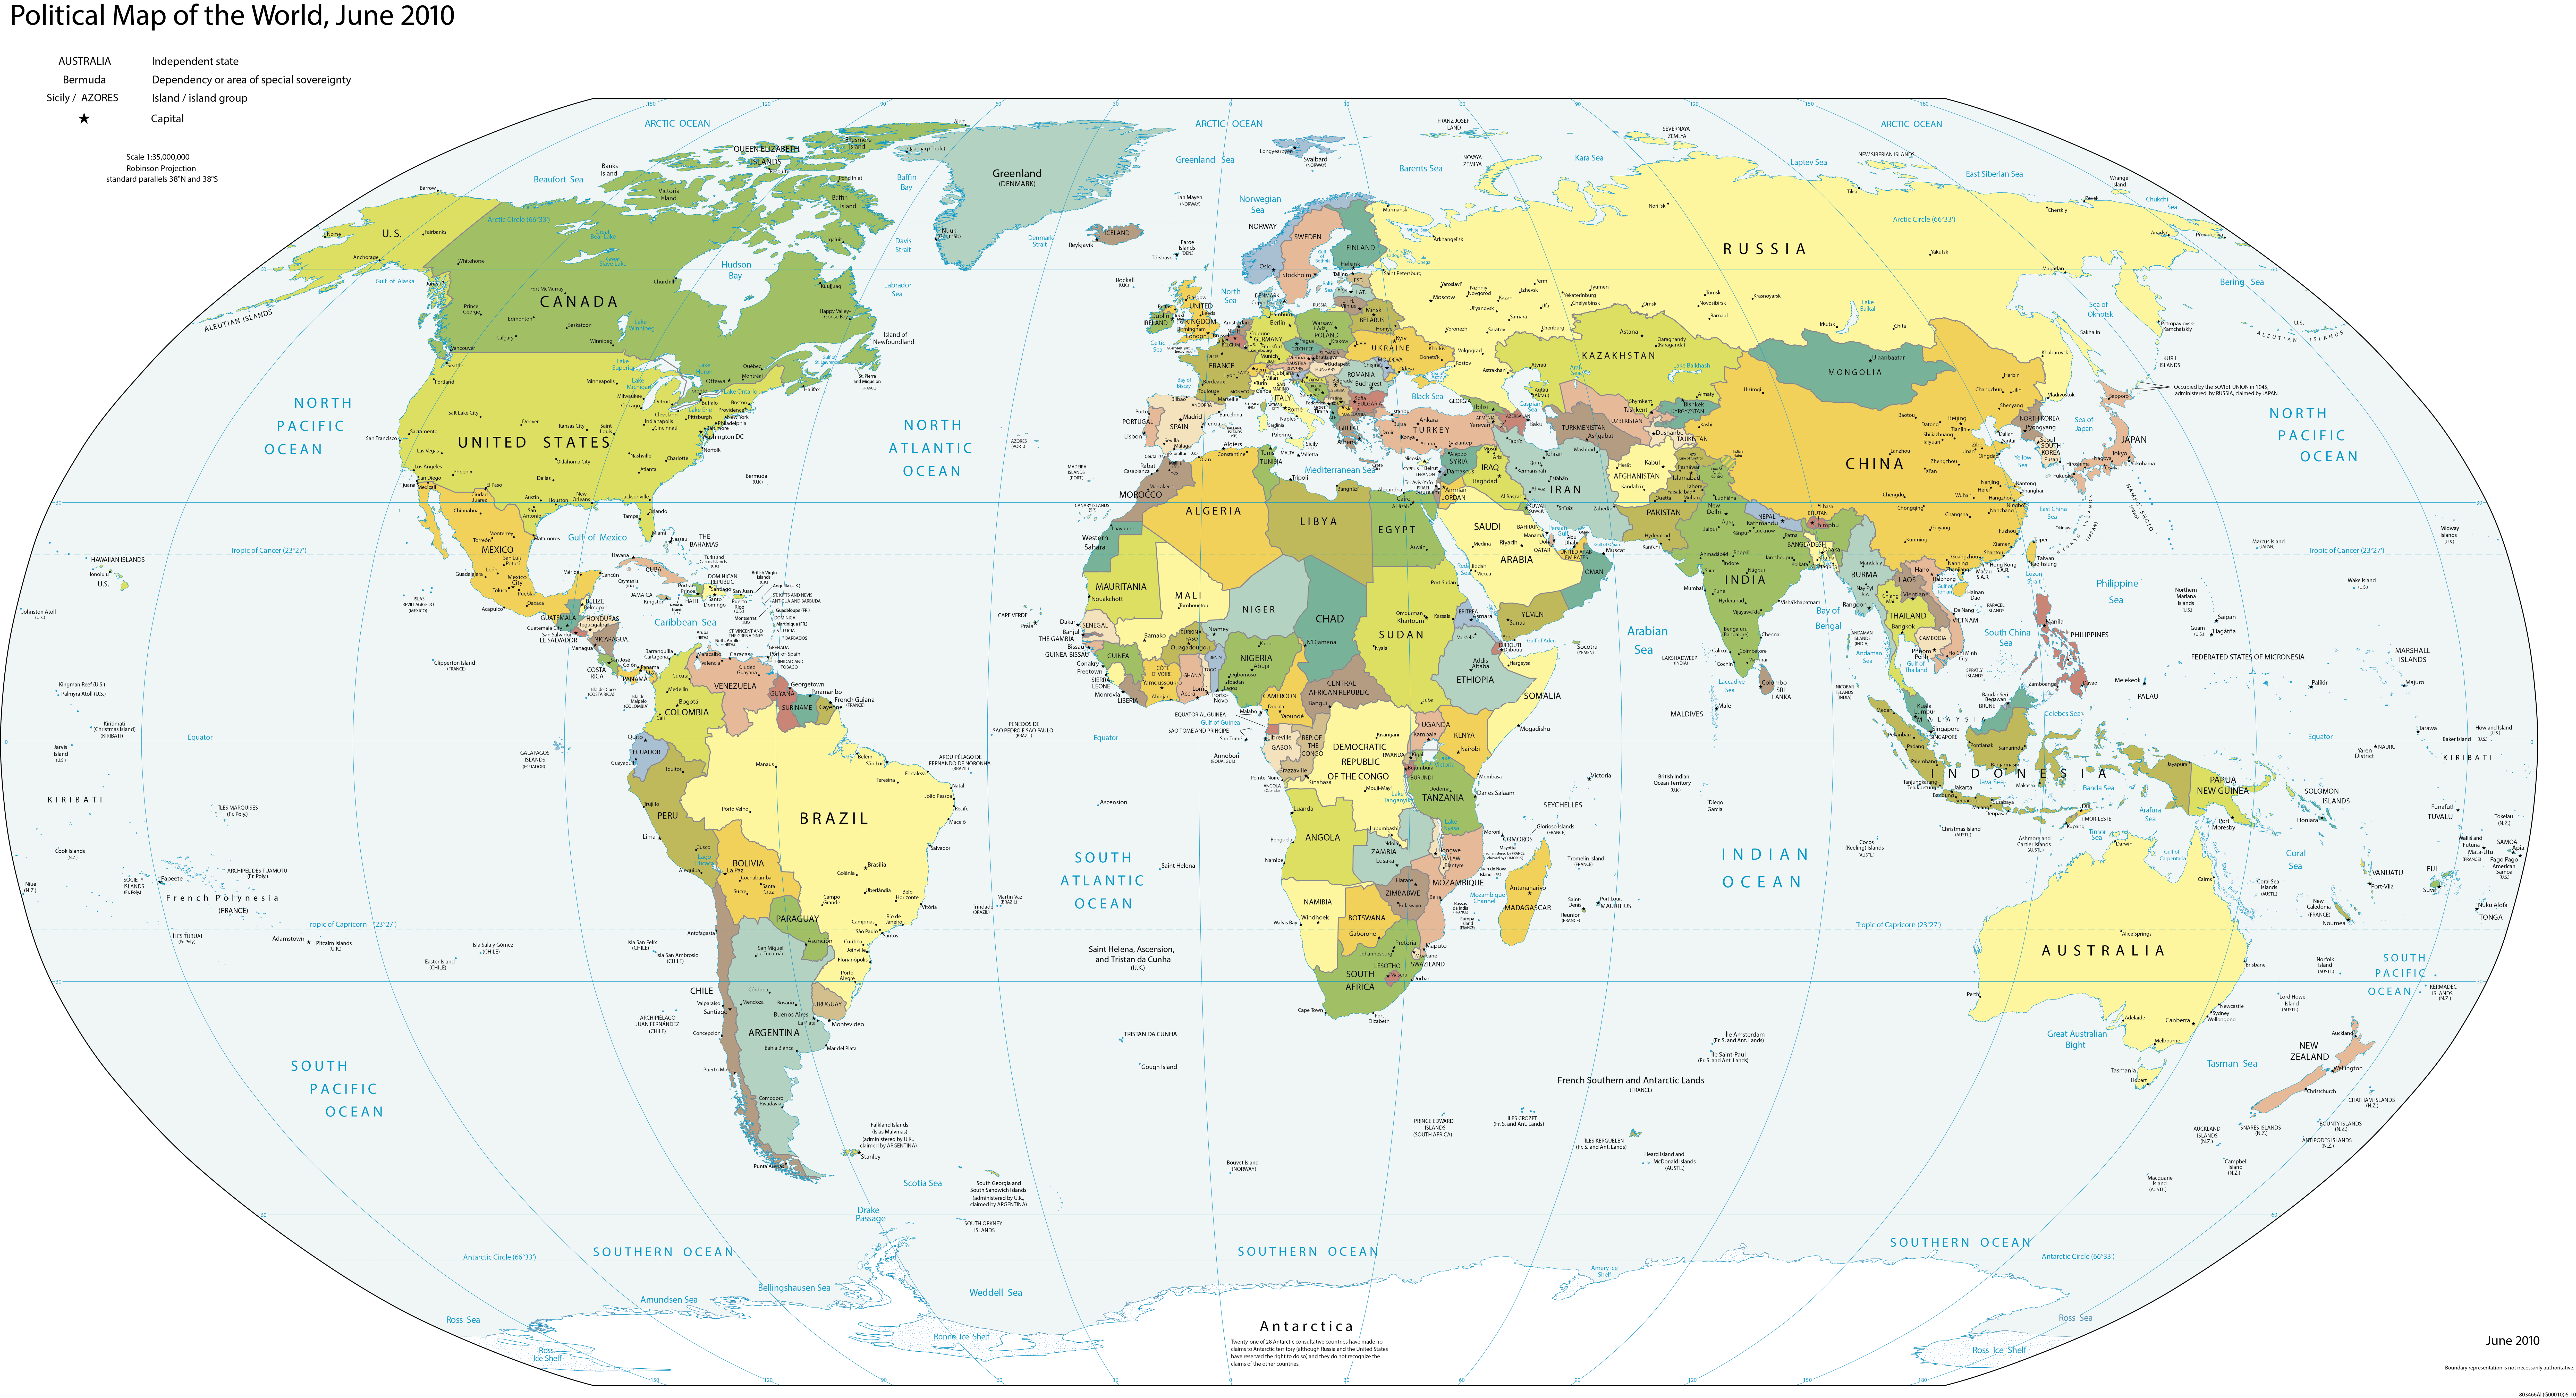 File:Political Map of the World (june 2010).png   Wikimedia Commons